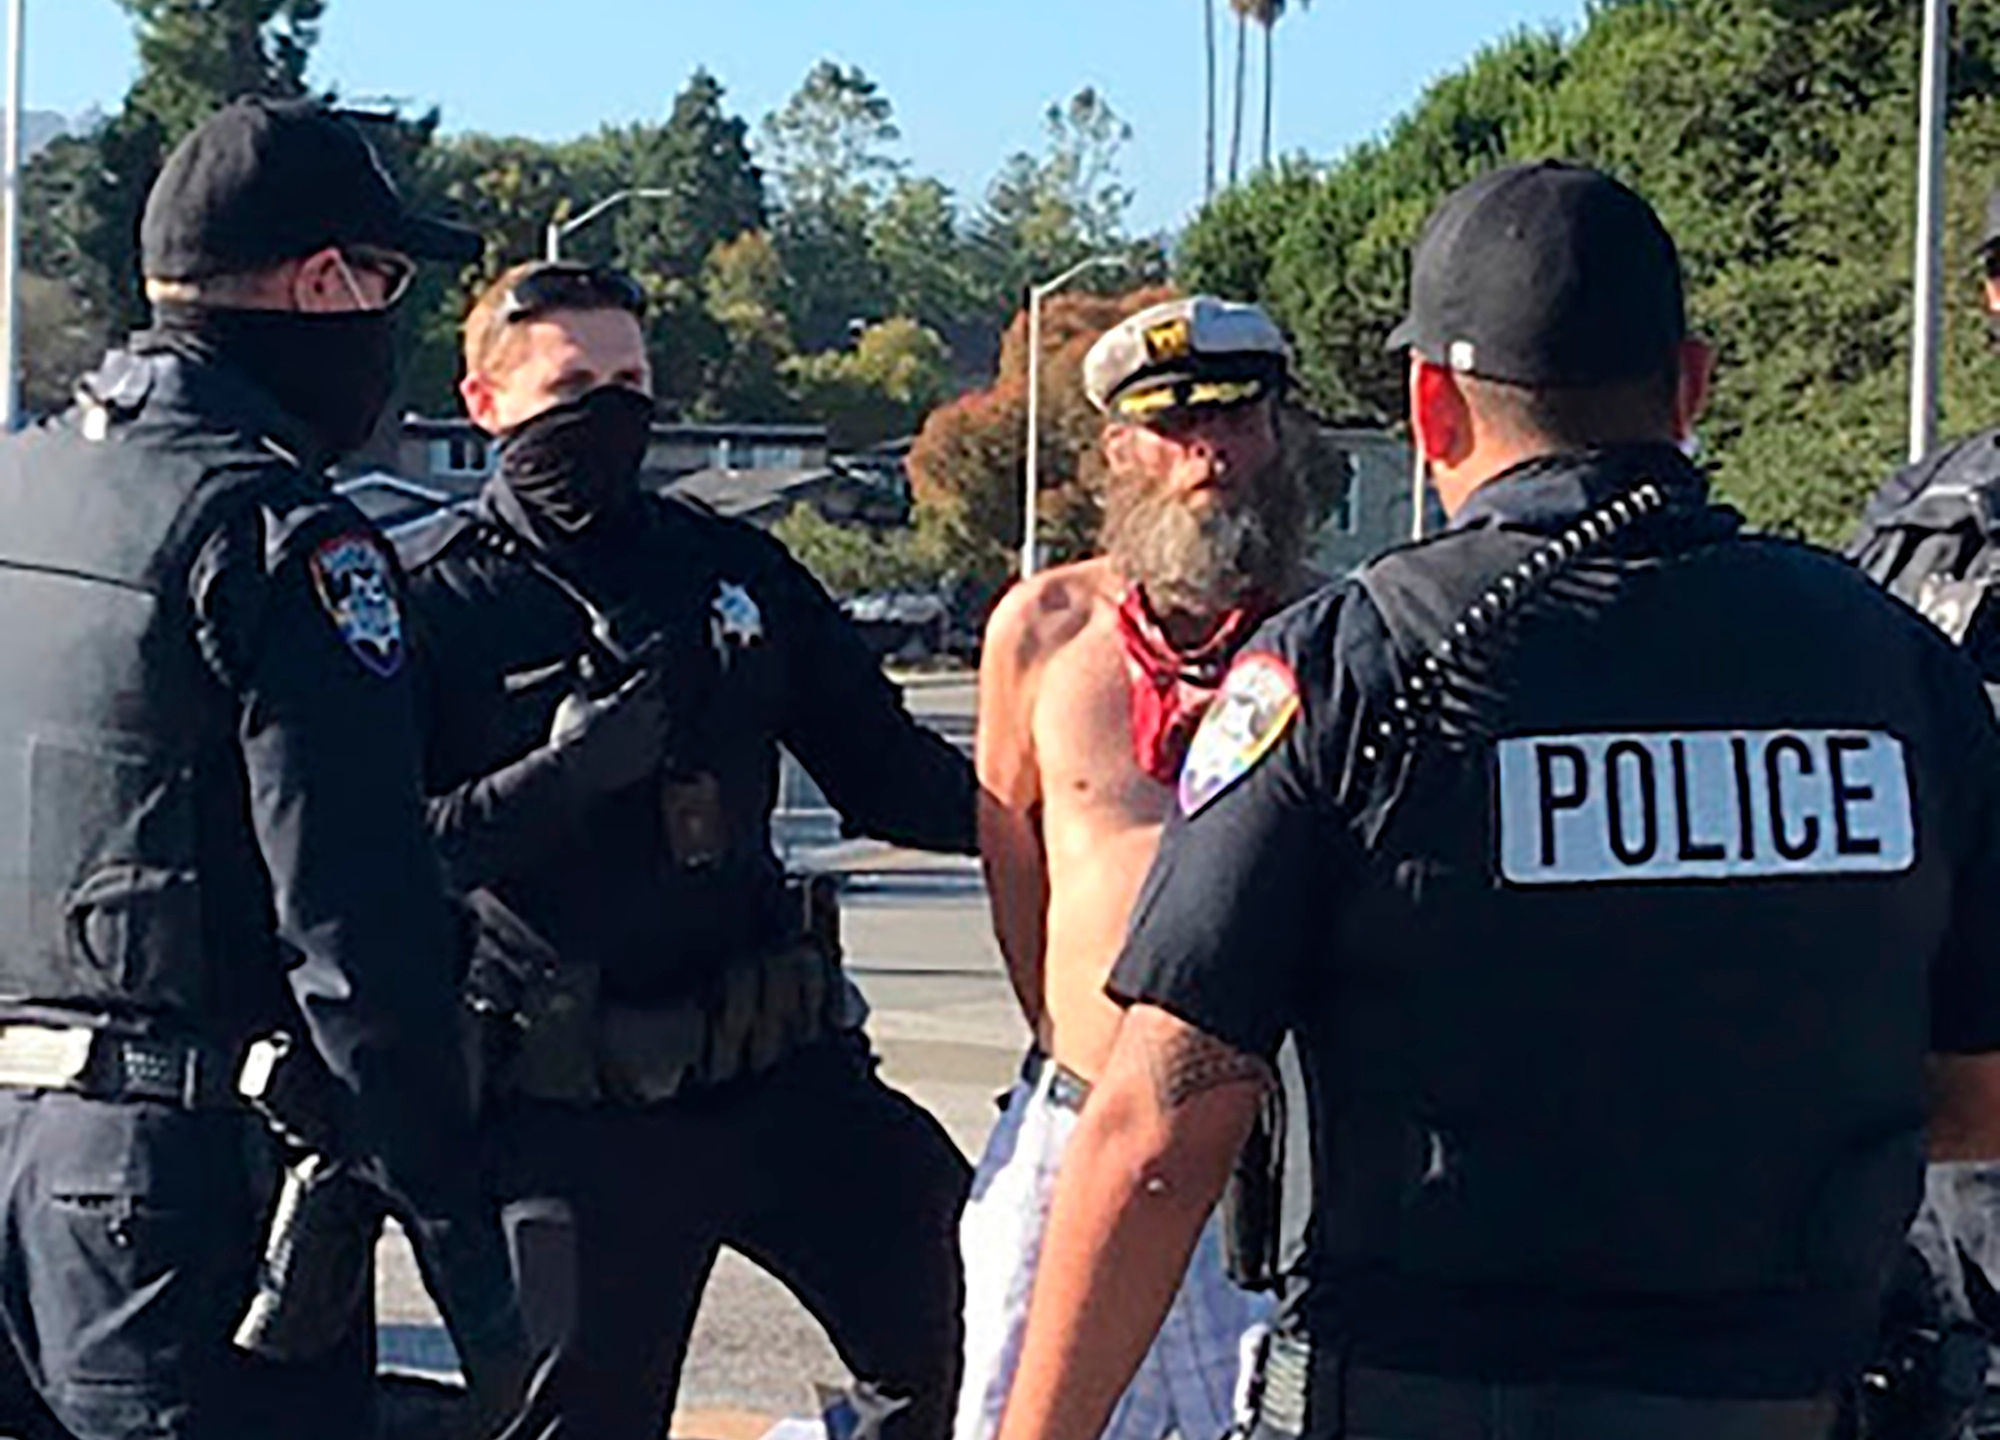 This July 5, 2020, photo provided by the Santa Cruz Police Department shows Ole Hougen being taken into custody by police officers in Santa Cruz, Calif. (Santa Cruz Police Department via AP)